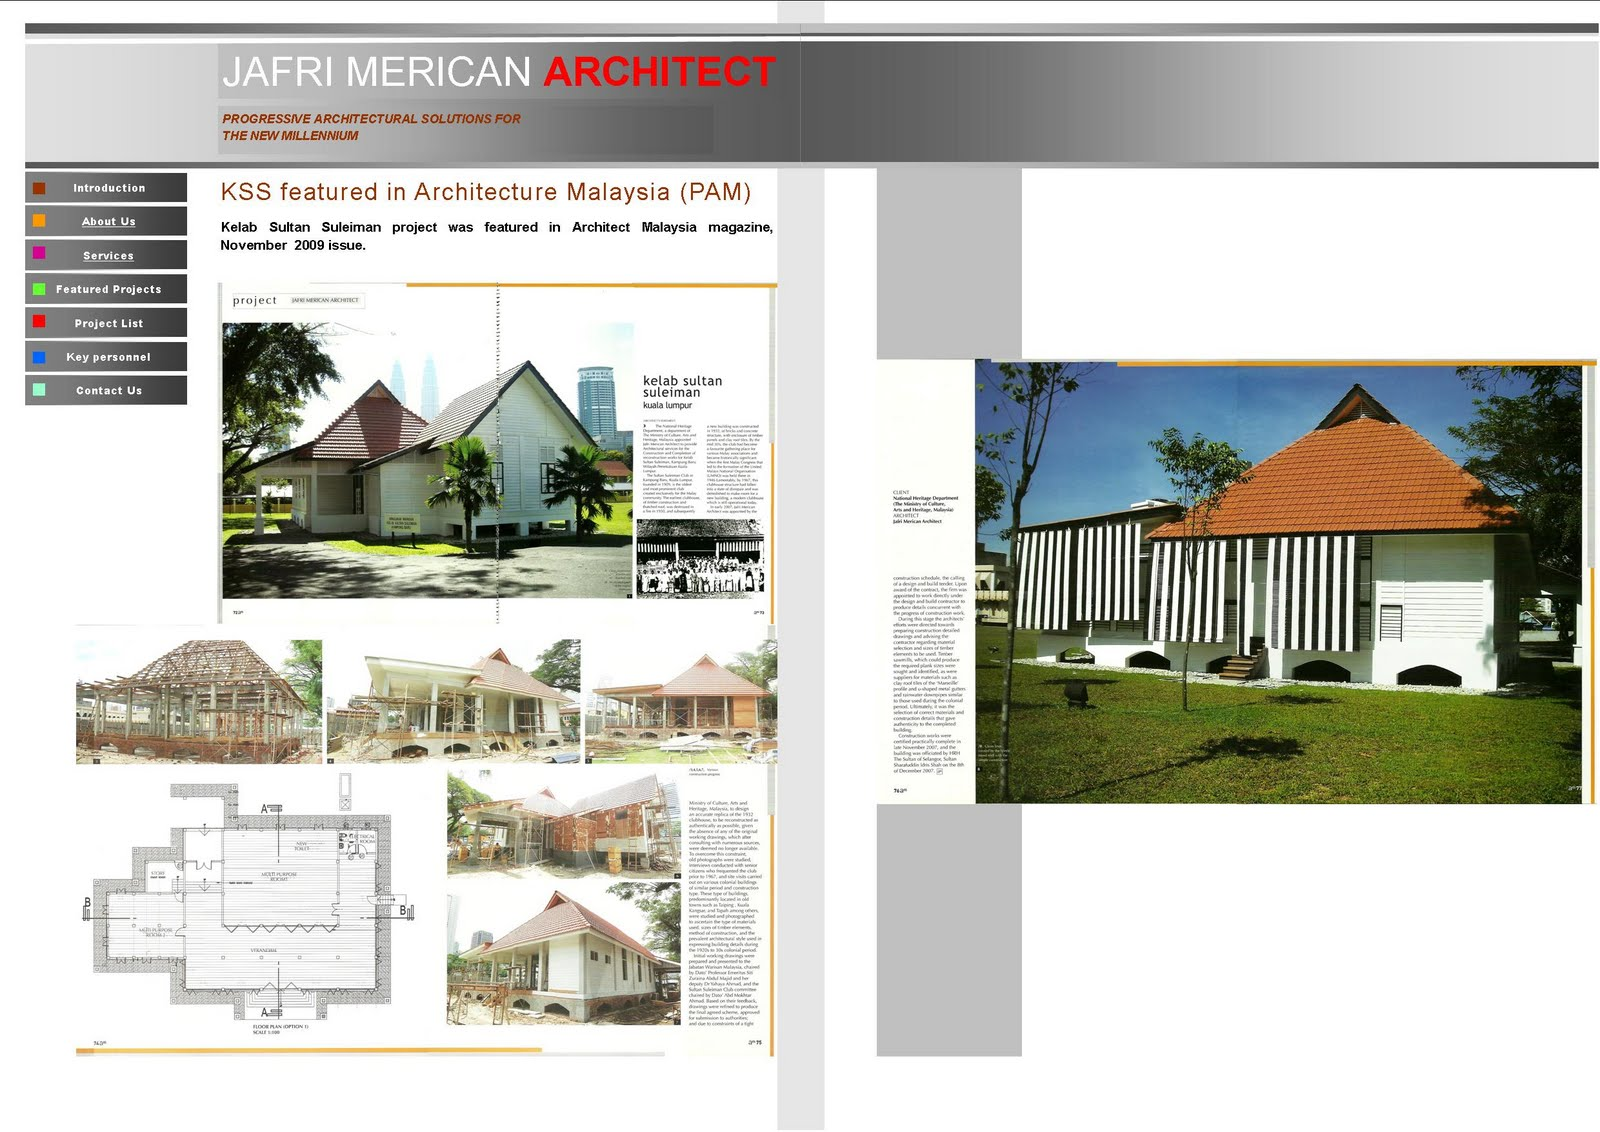 jafri merican architect cv kss featured in architecture cv kss featured in architecture pam